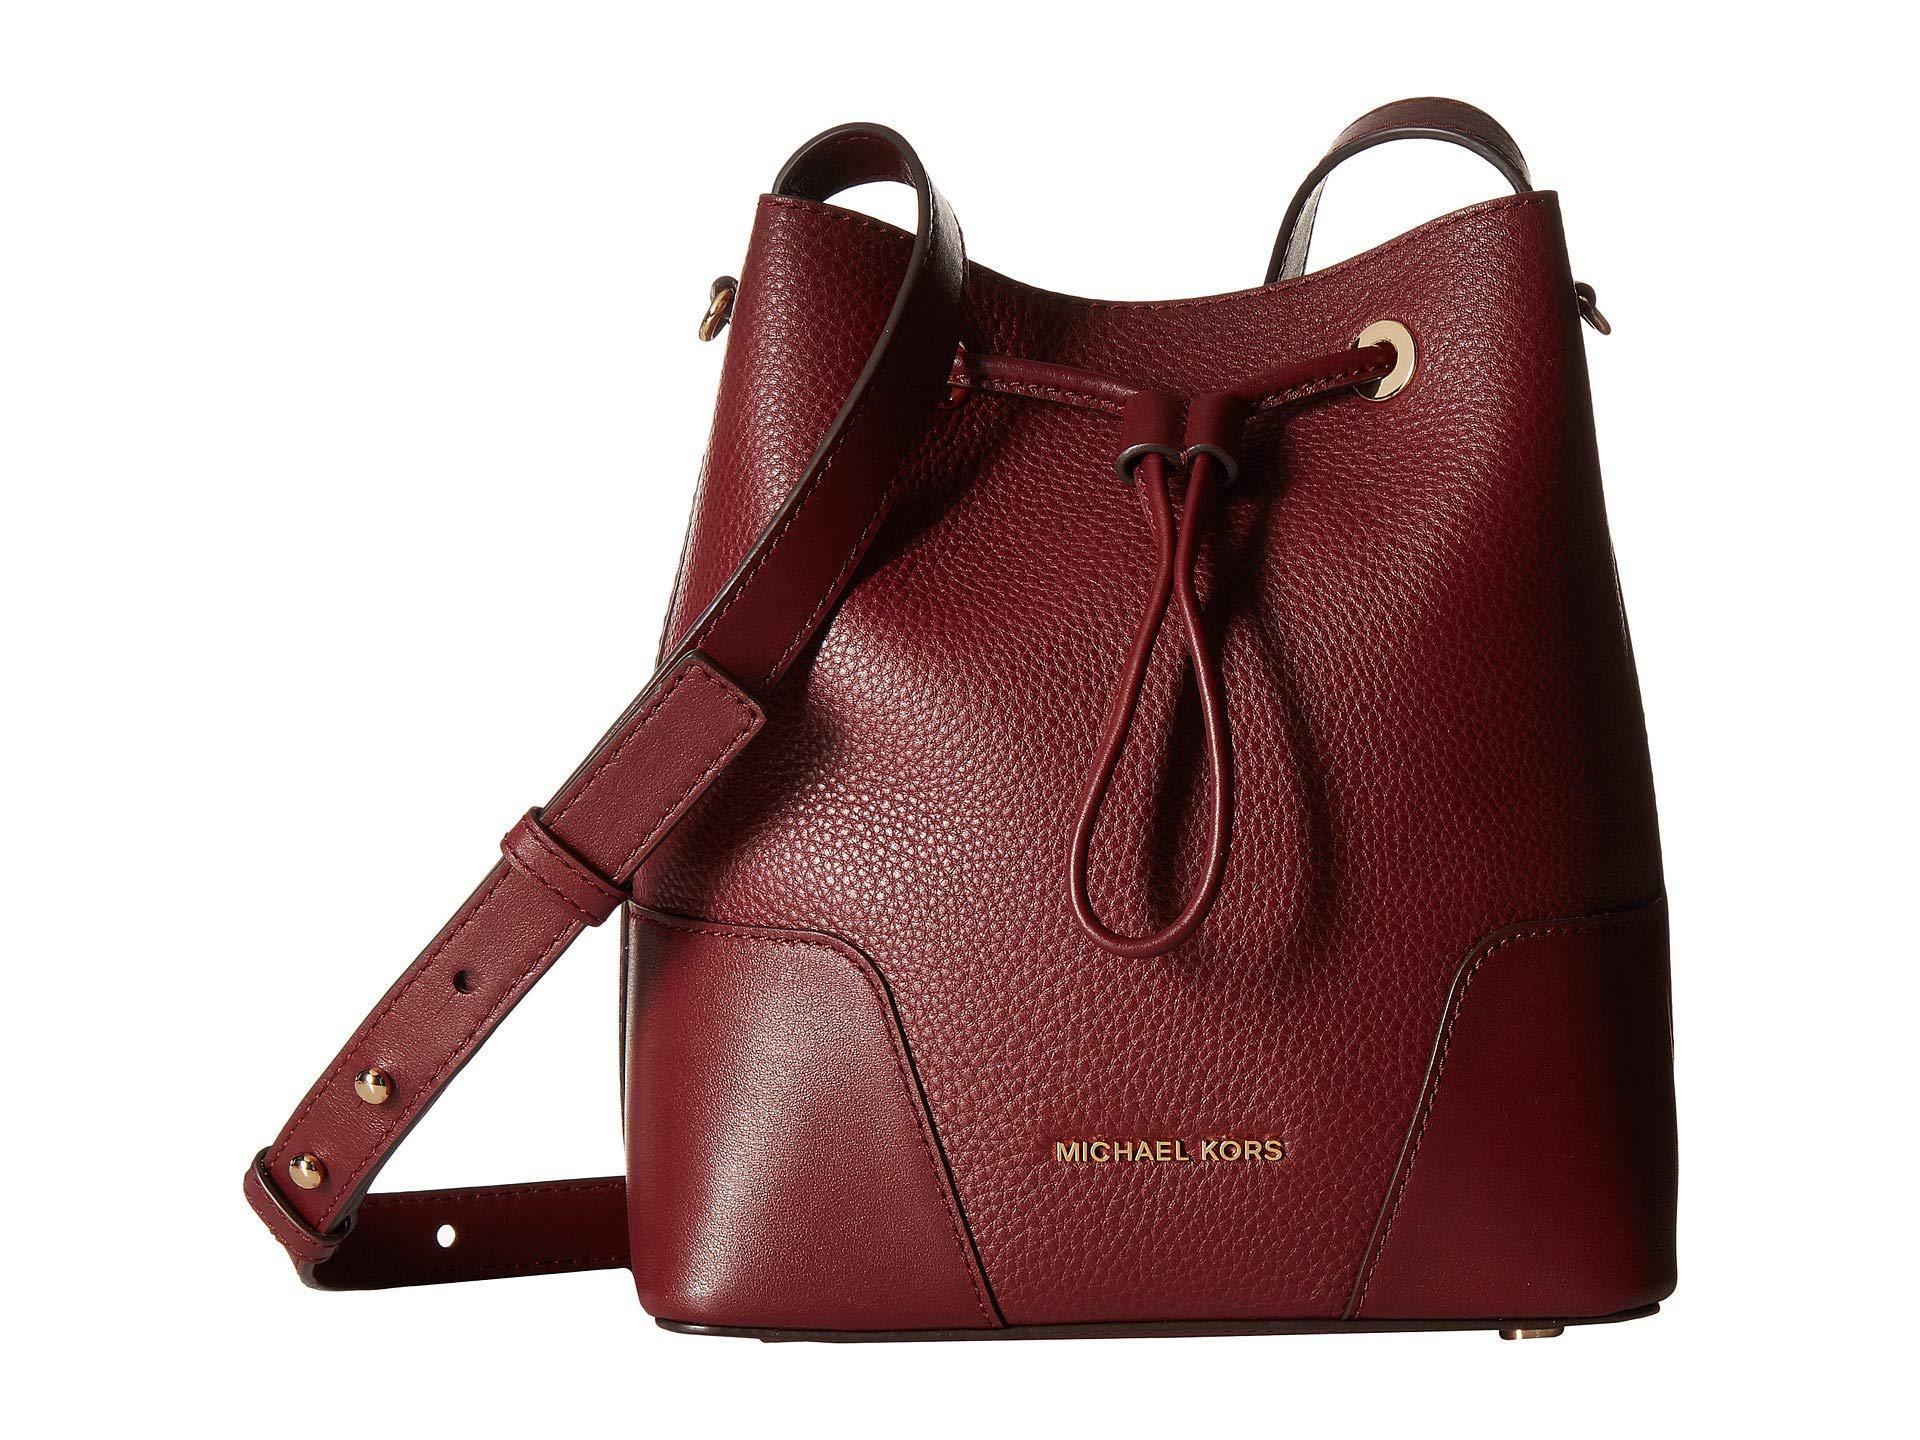 Lyst - MICHAEL Michael Kors Cary Small Bucket Bag in Red 1dfde7f0f8f